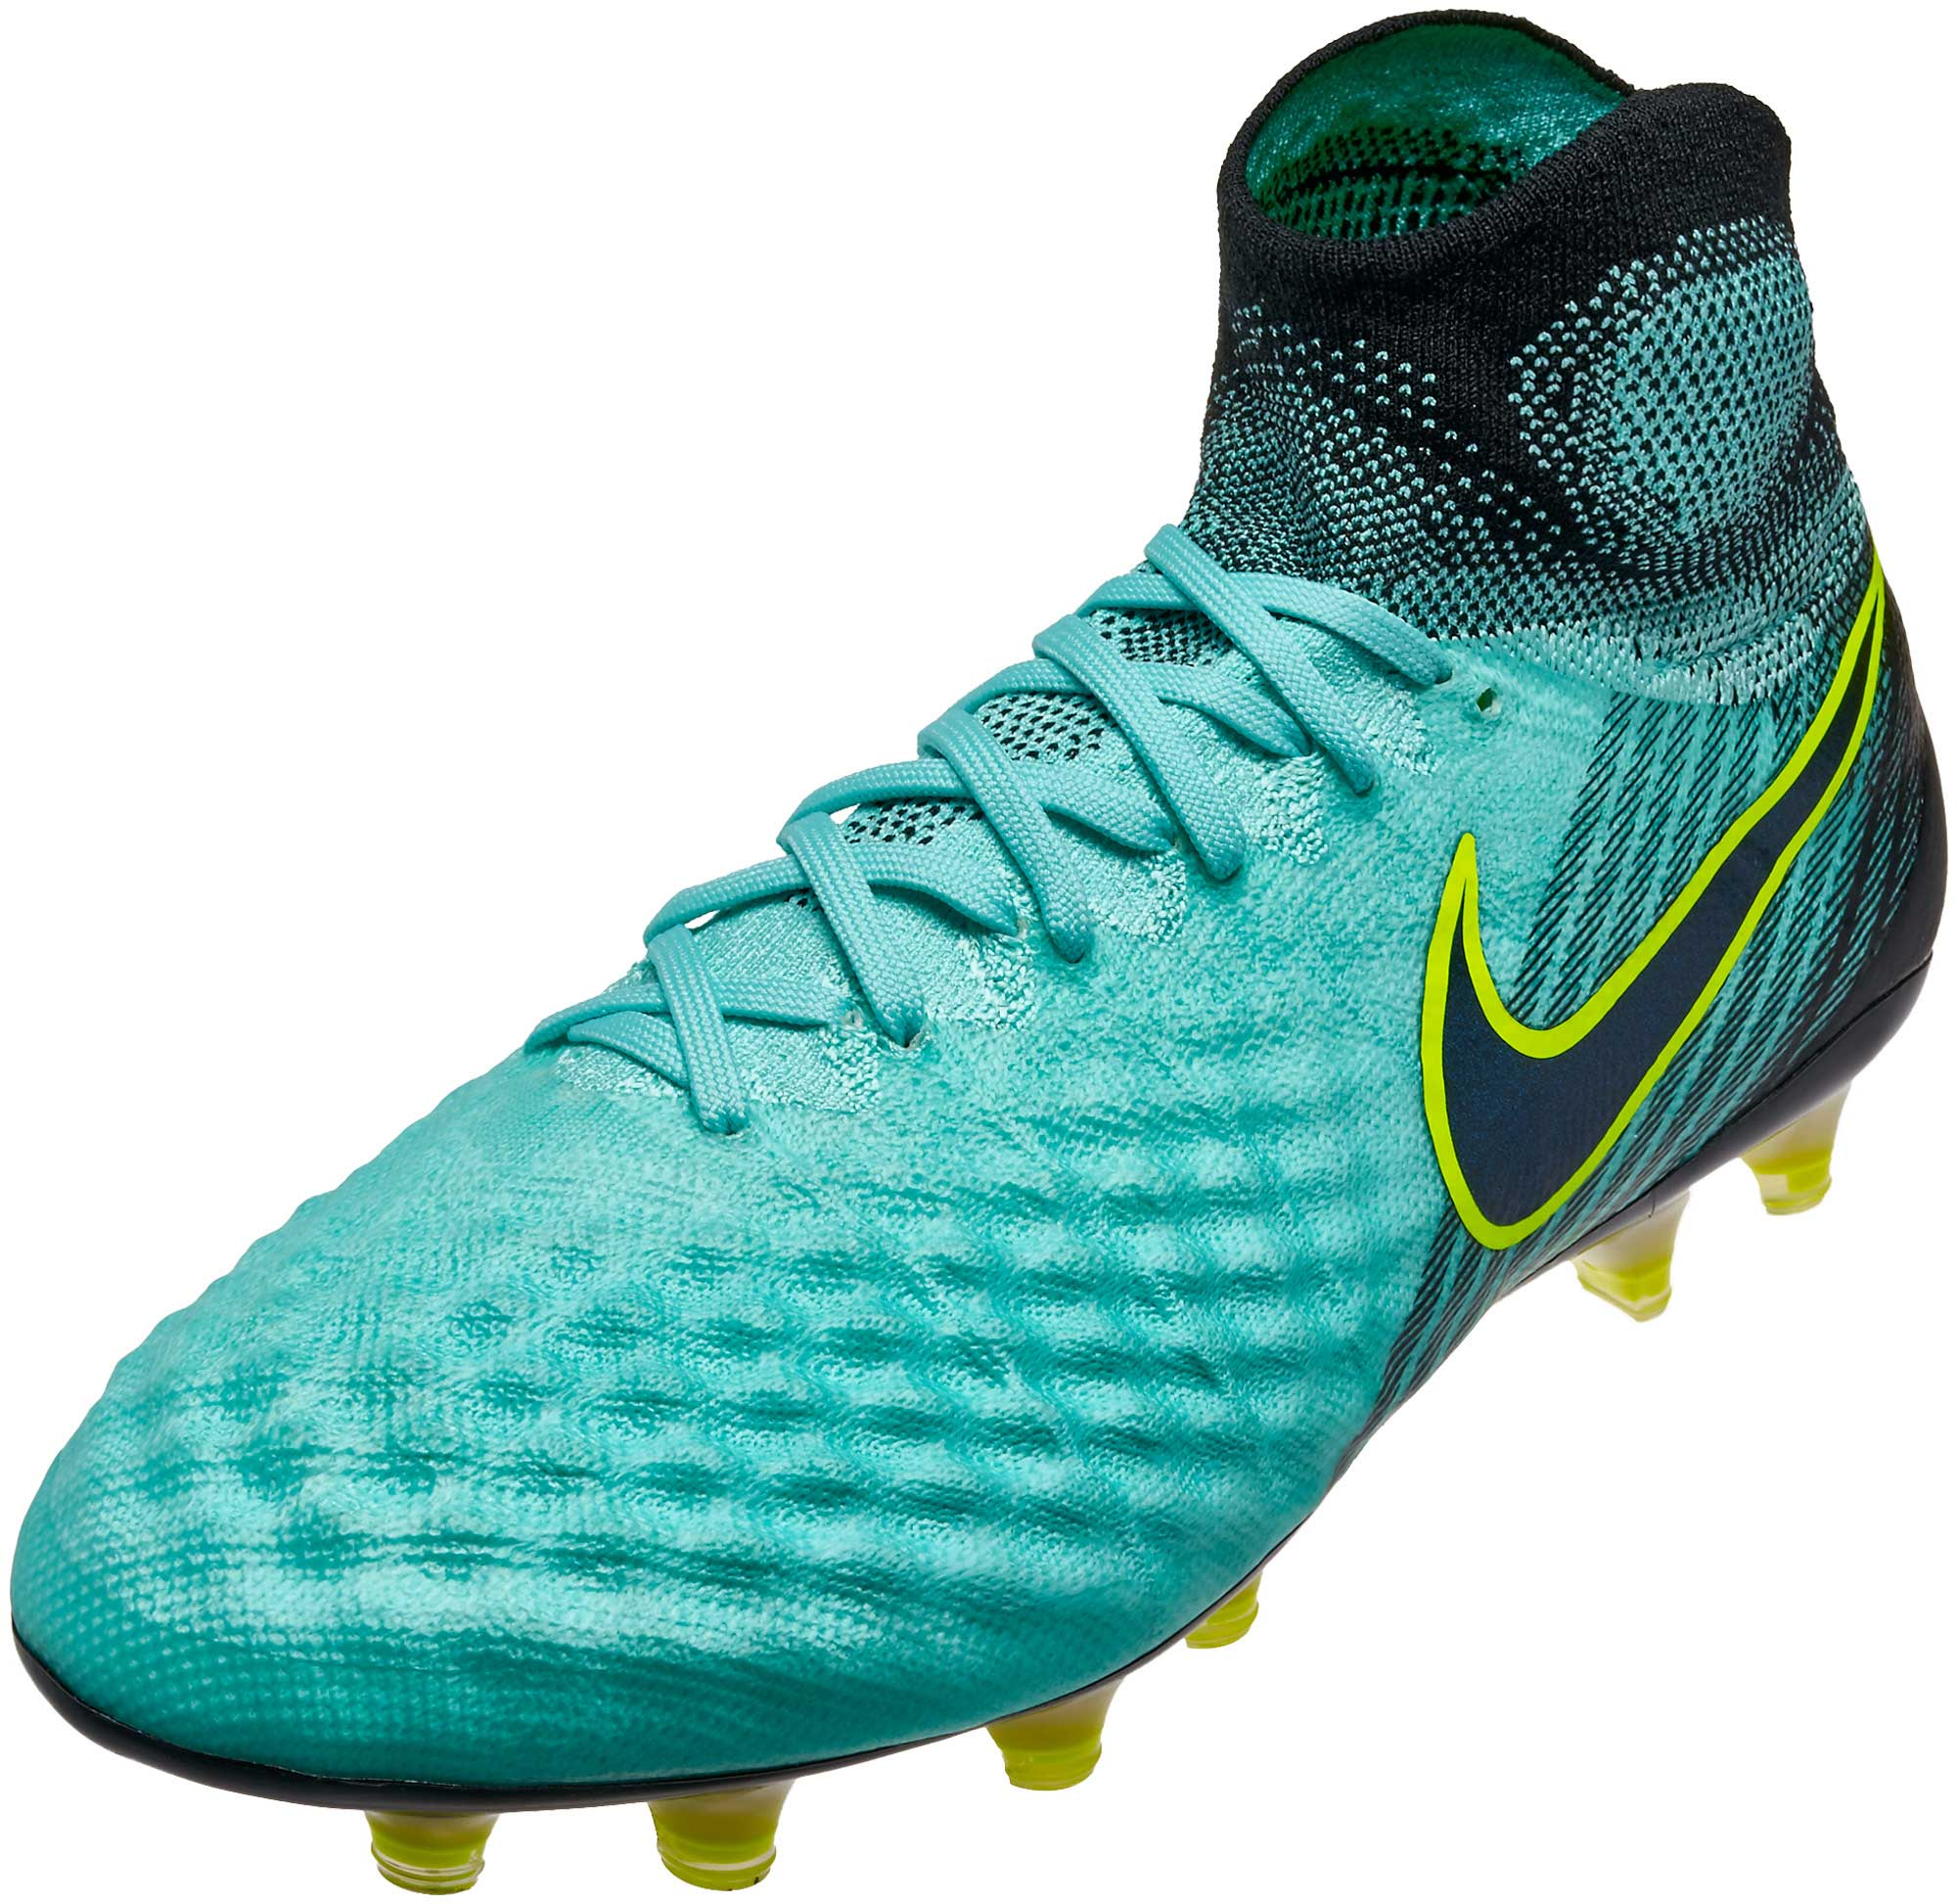 new arrival c9d5f 83c7f Nike Womens Magista Obra II FG – Light AquaBlack